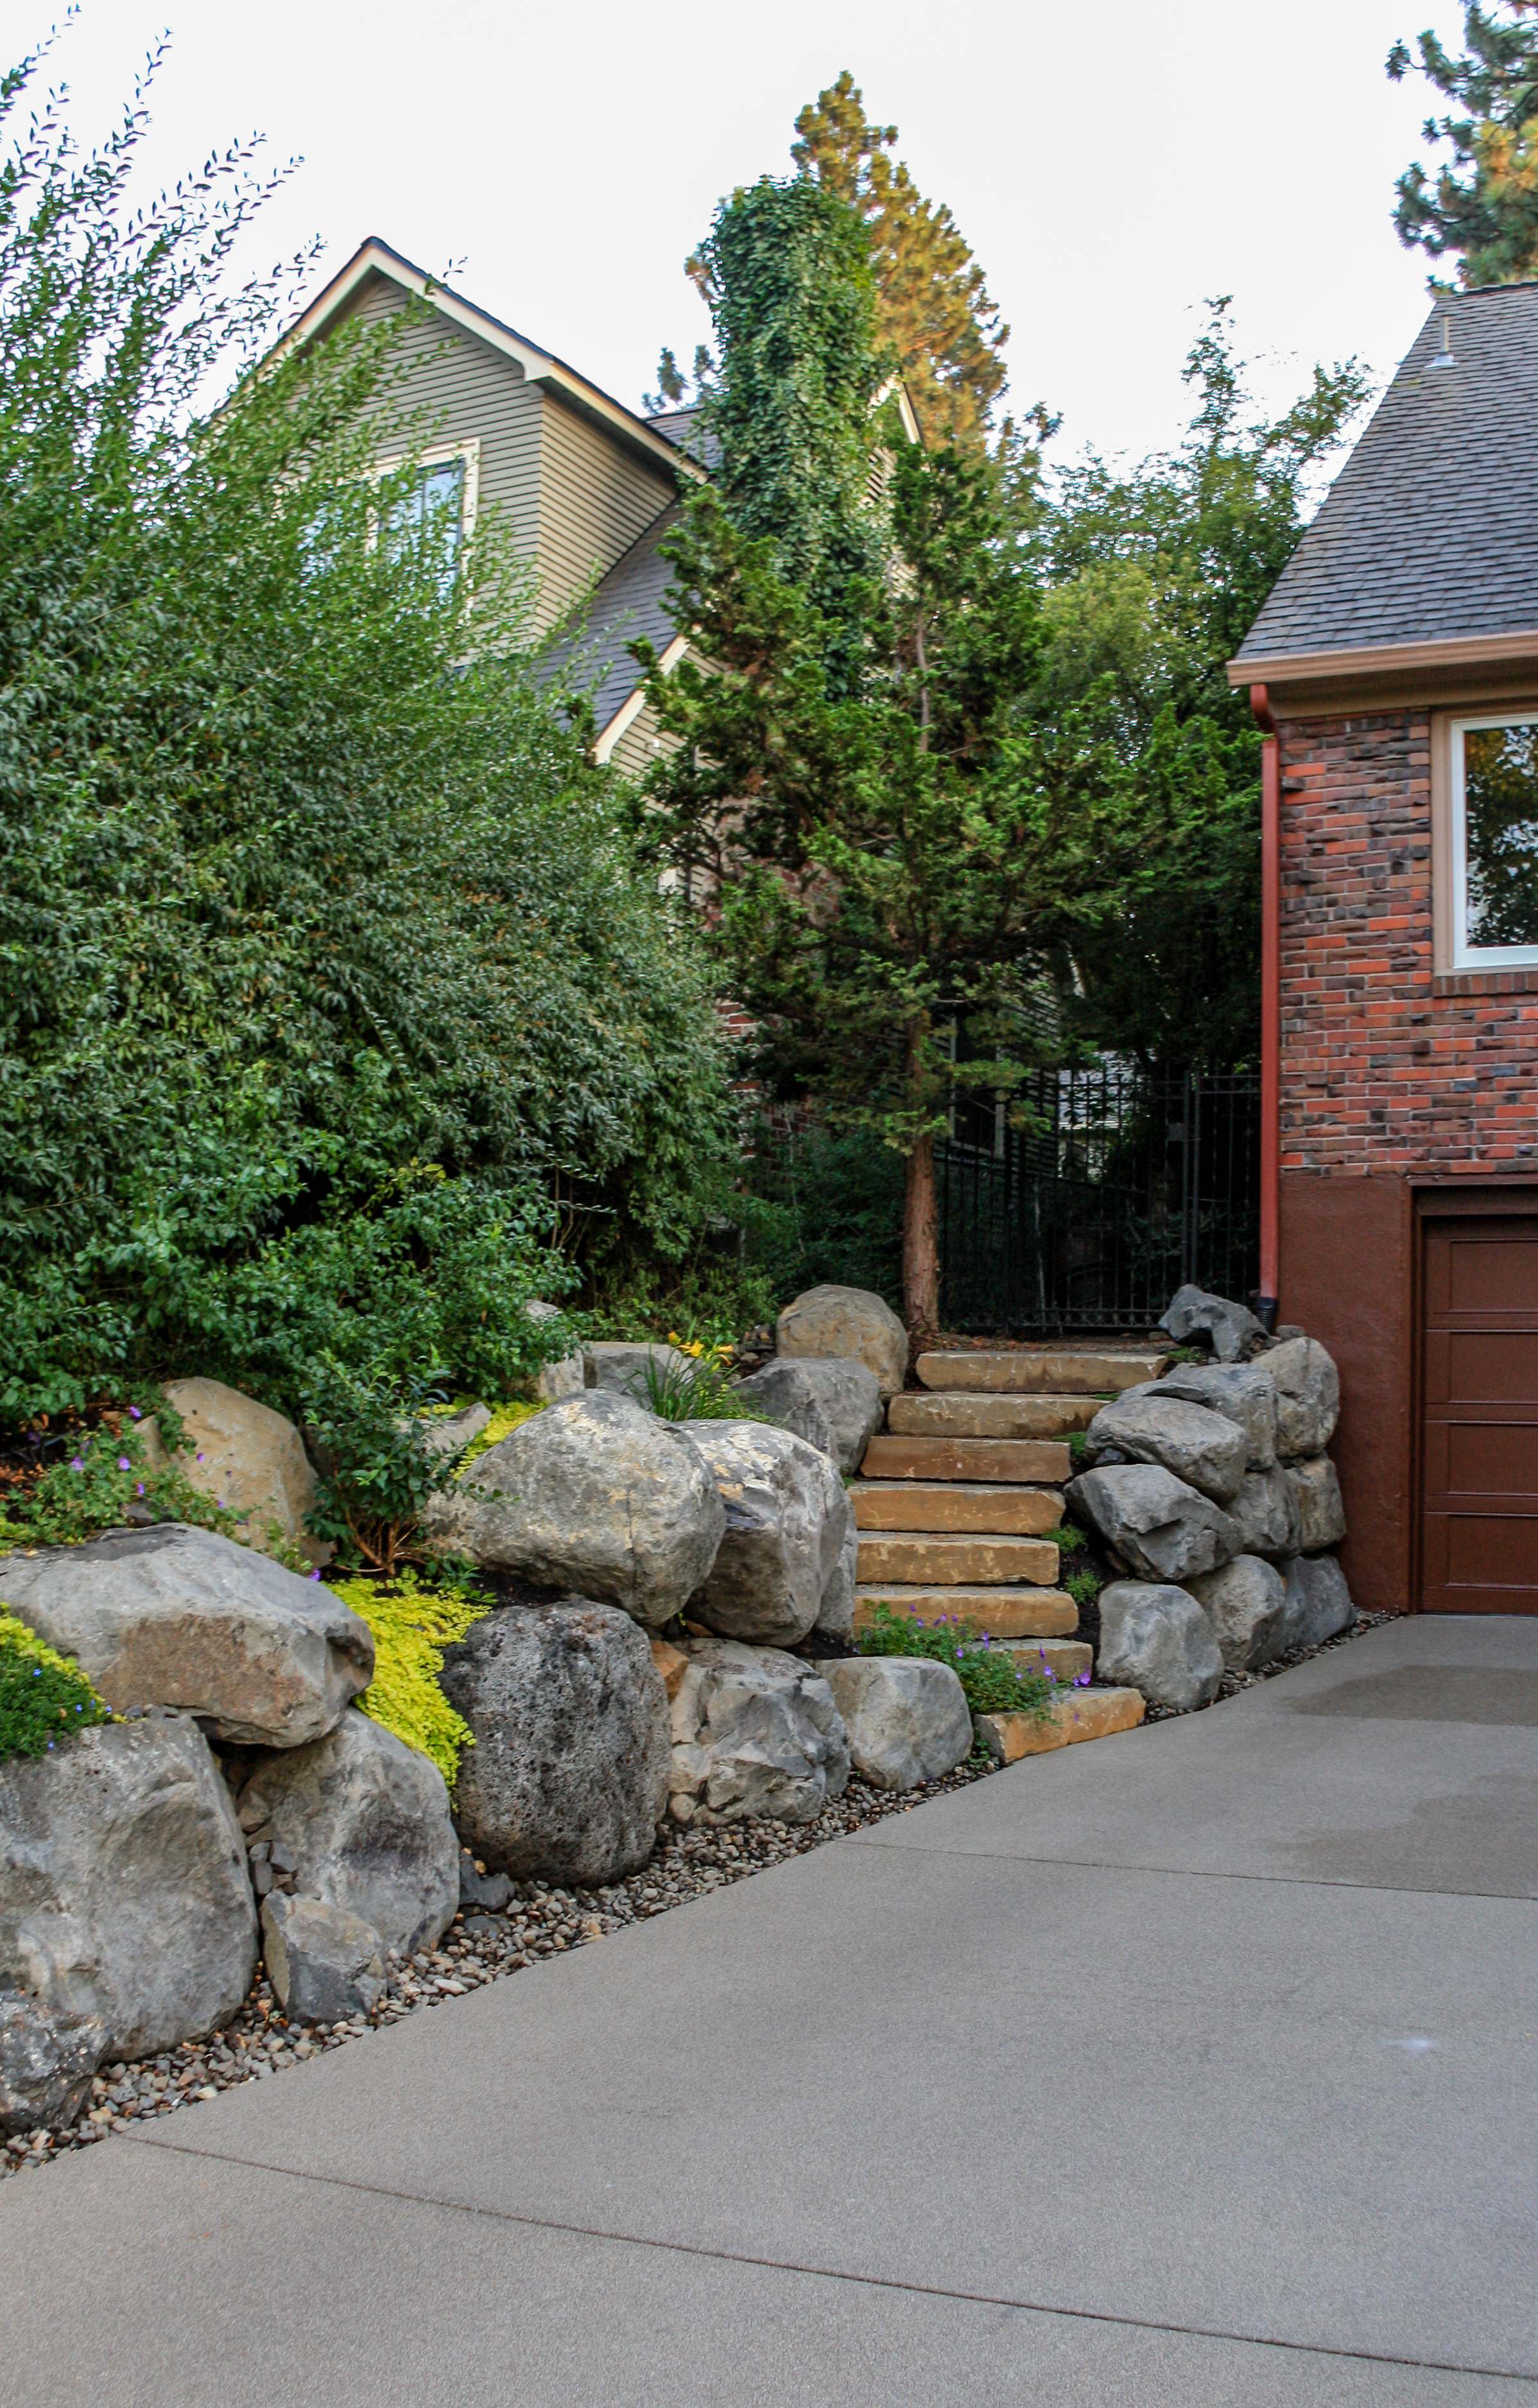 spokane landscaping with boulder retaining walls and sandwashed driveway